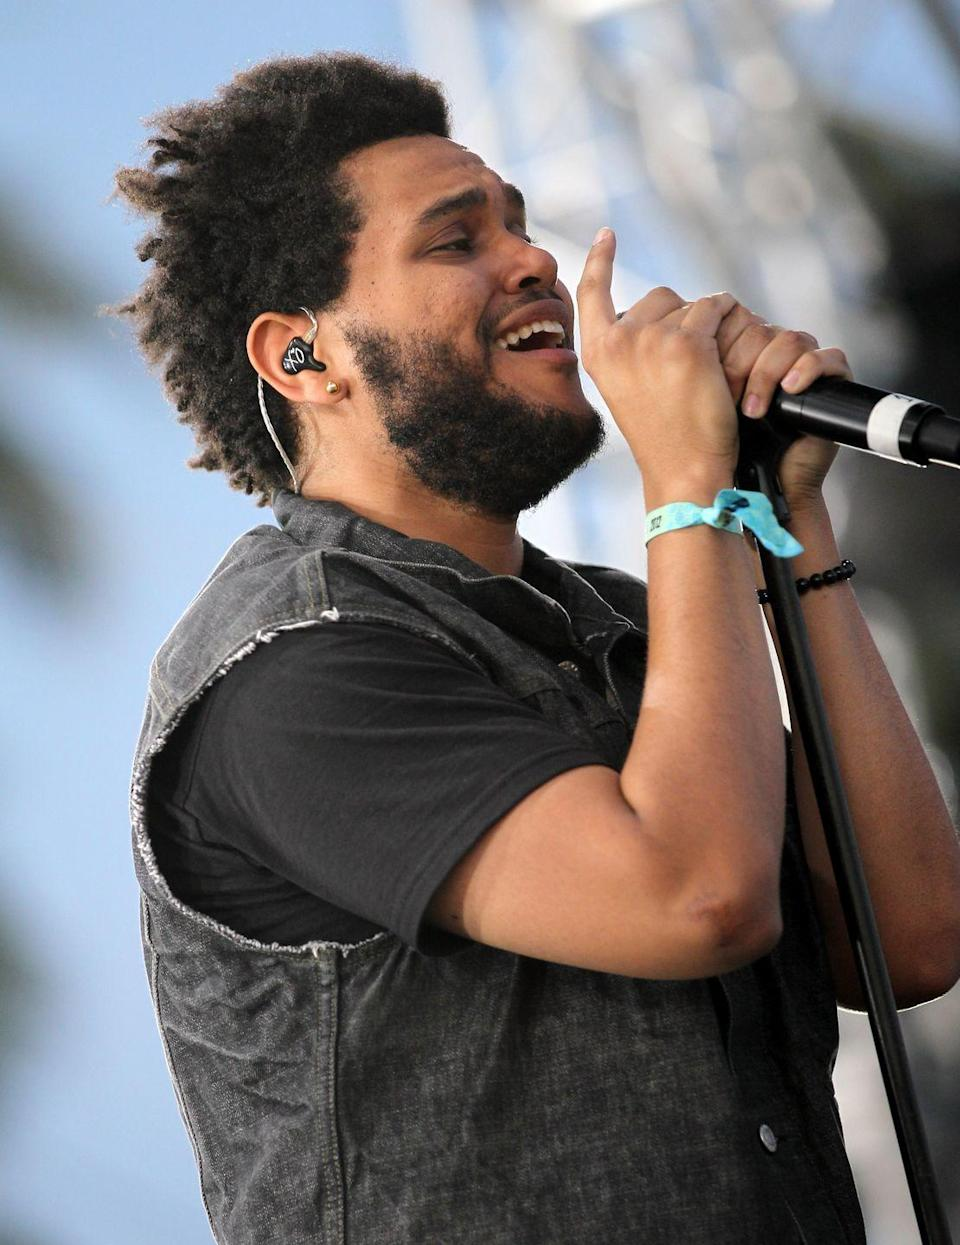 <p>At Coachella in 2012, Abel Tesfaye (aka The Weeknd) rocked a full beard with a square trimmed hairline. At the start of his career, the singer kept his hair short. <br></p>